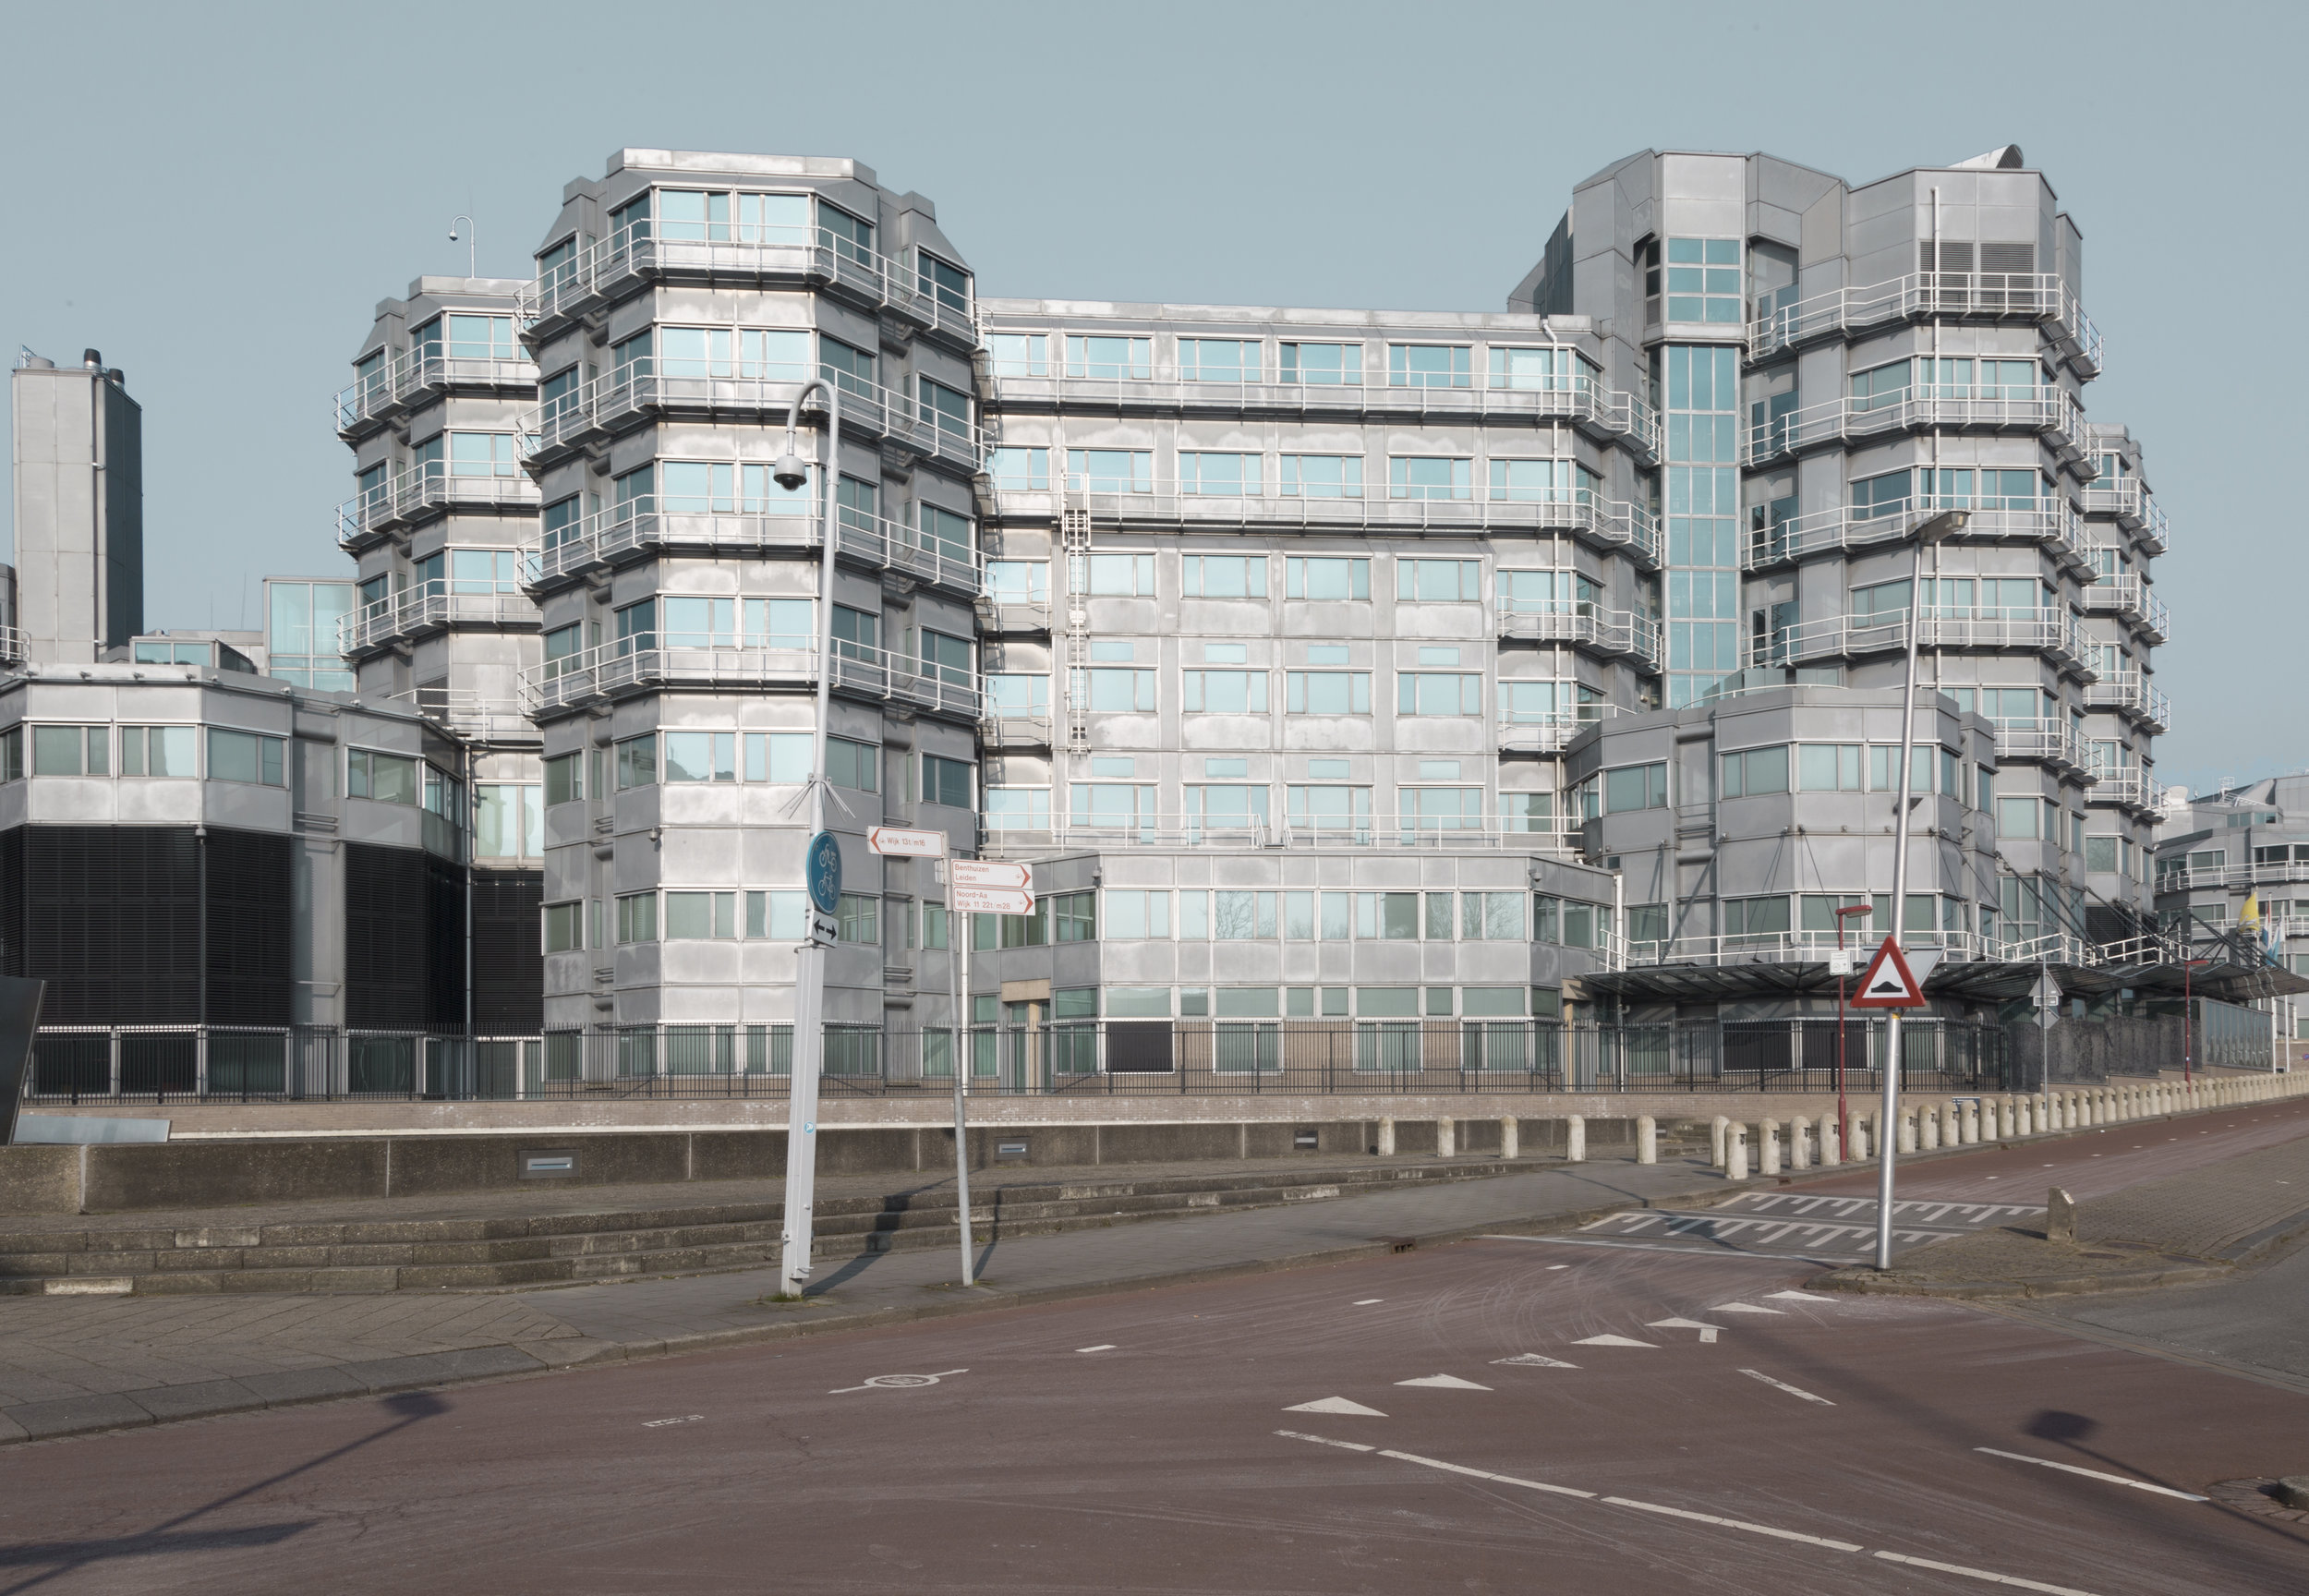 Suburban Homes and Ugly Office Buildings_7.jpg